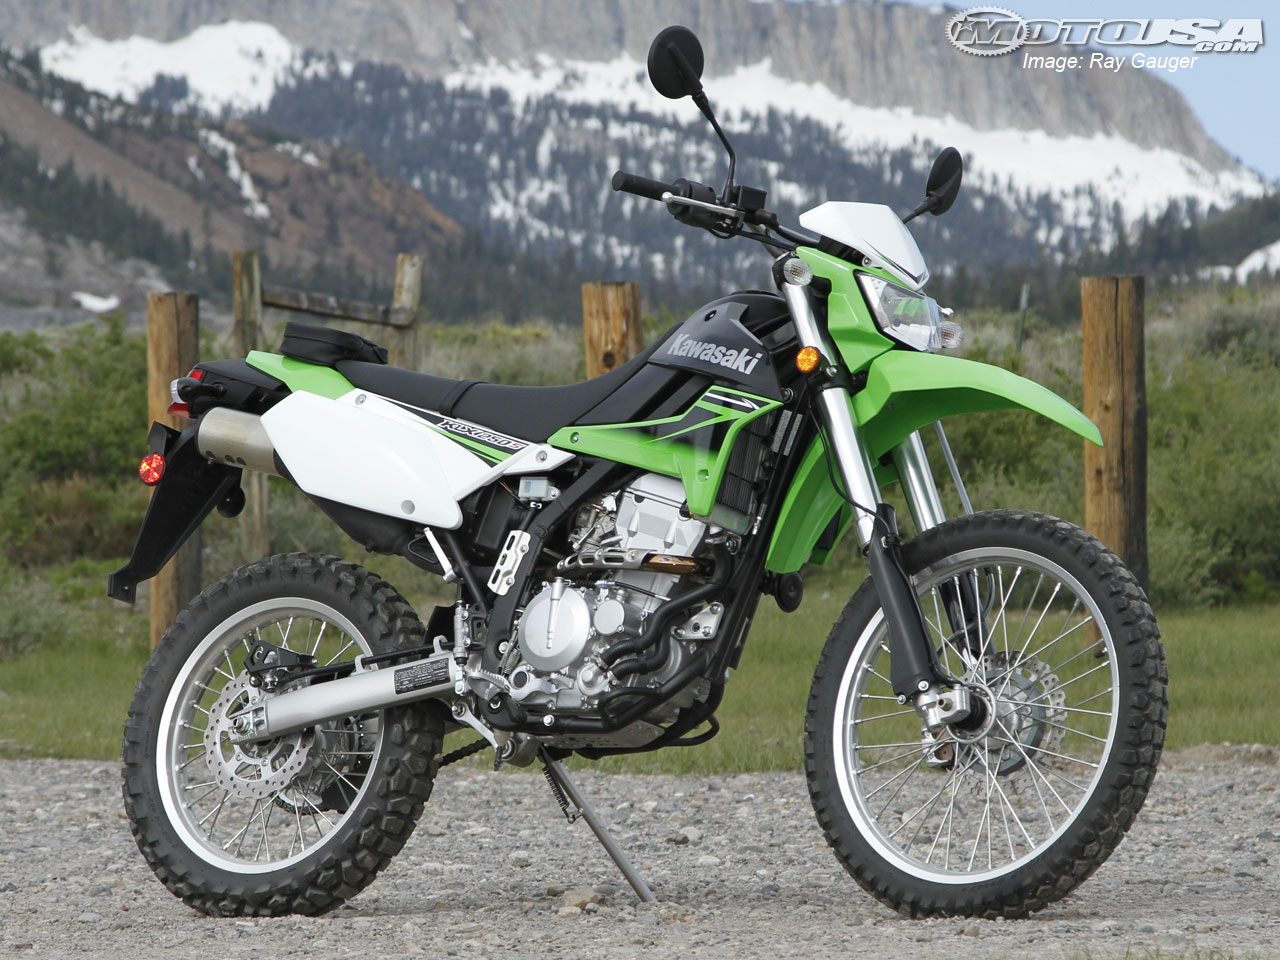 kawasaki motor bikes 2012 kawasaki klx250s. Black Bedroom Furniture Sets. Home Design Ideas